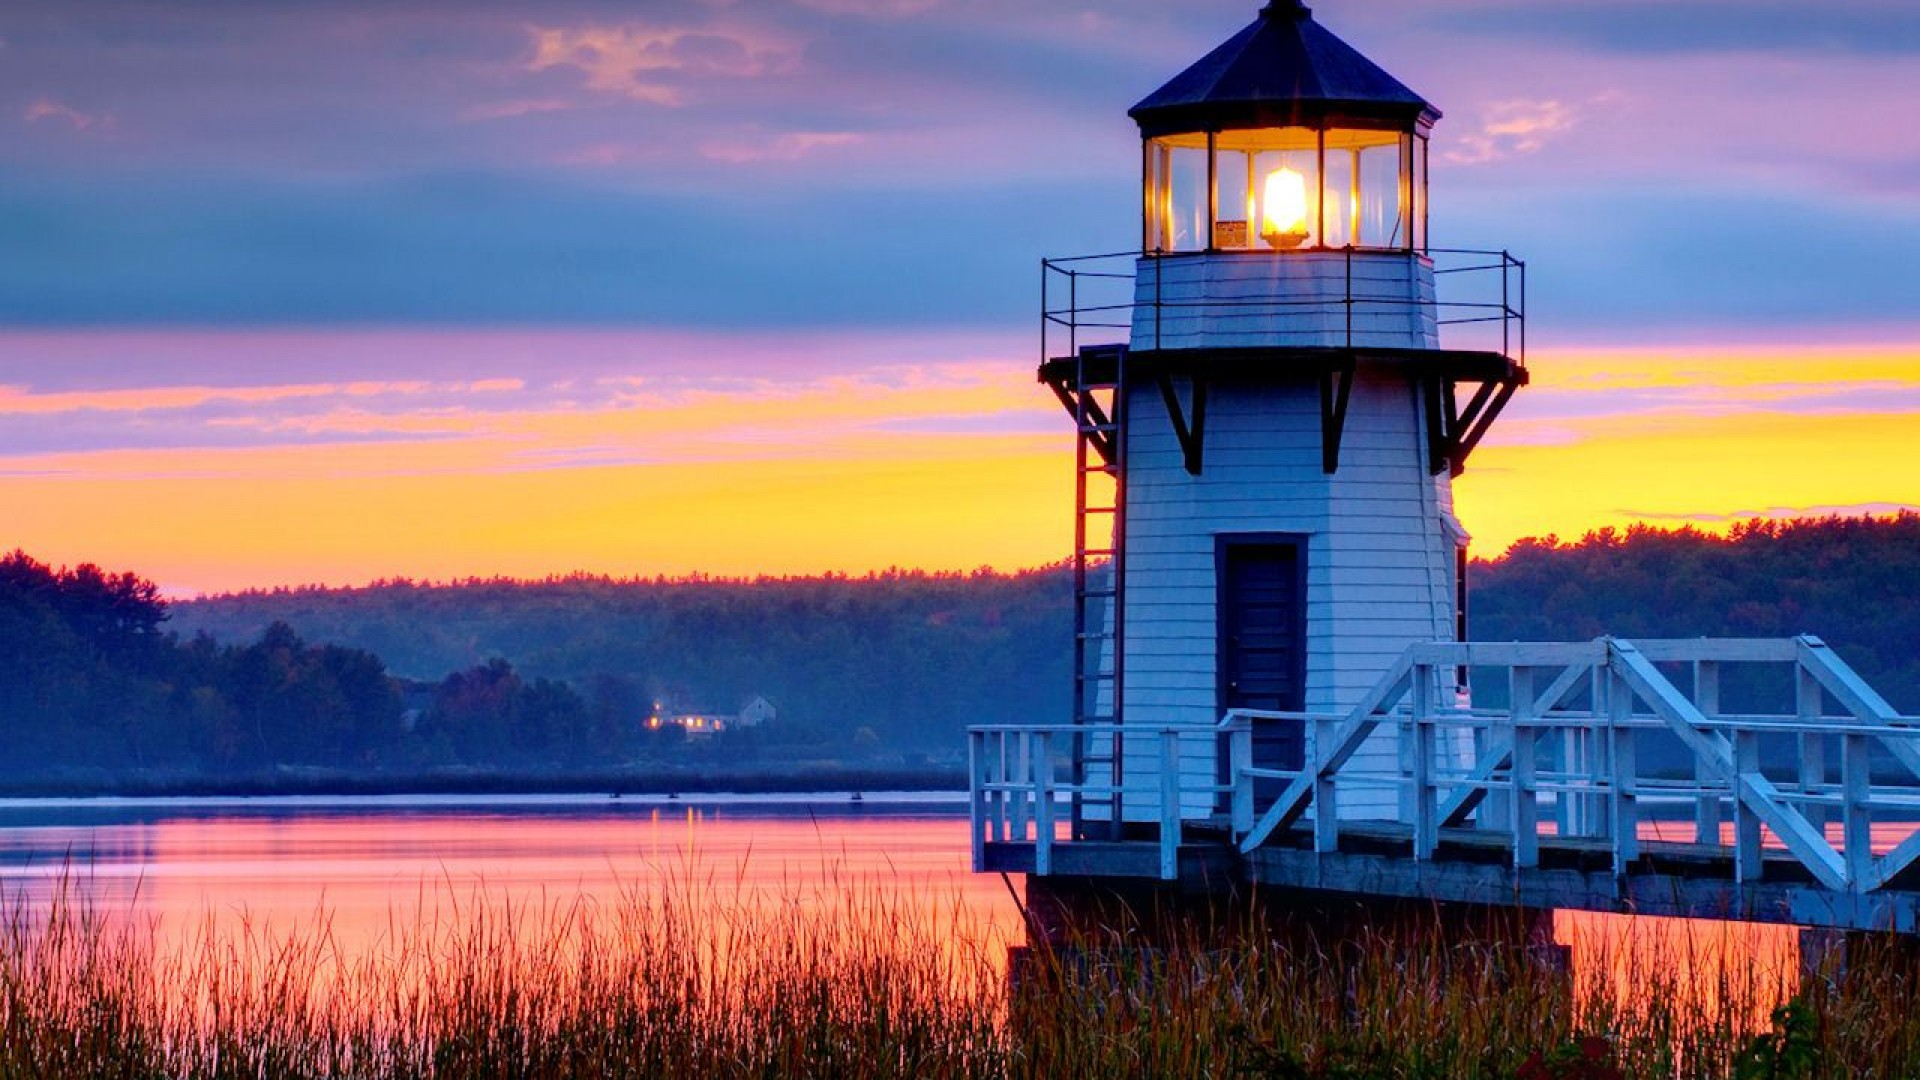 Lighthouse Pictures